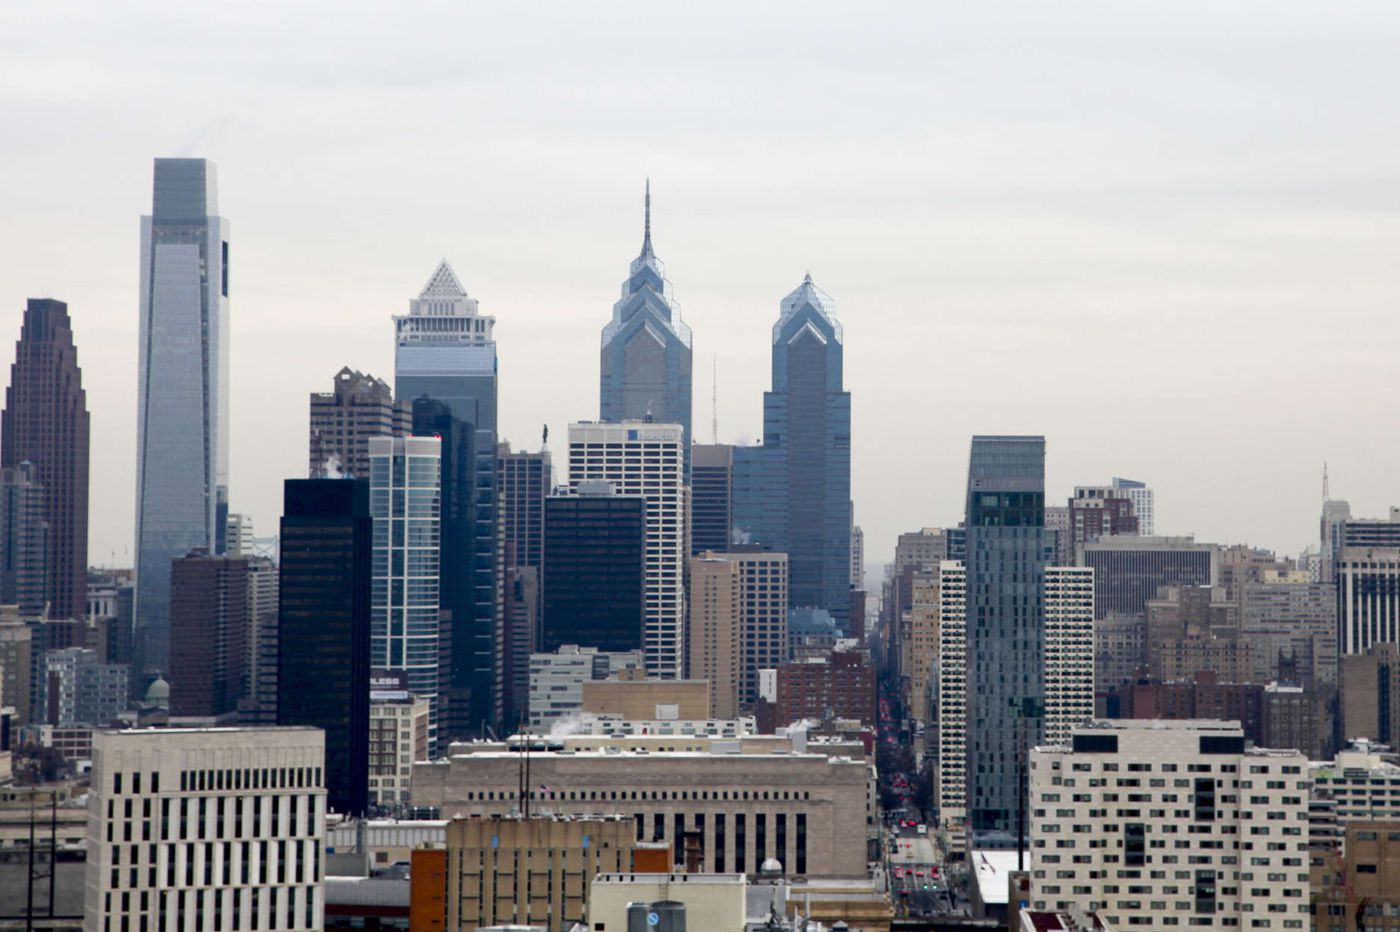 Retailers have spent $1b to get into Center City over the last five years, report says